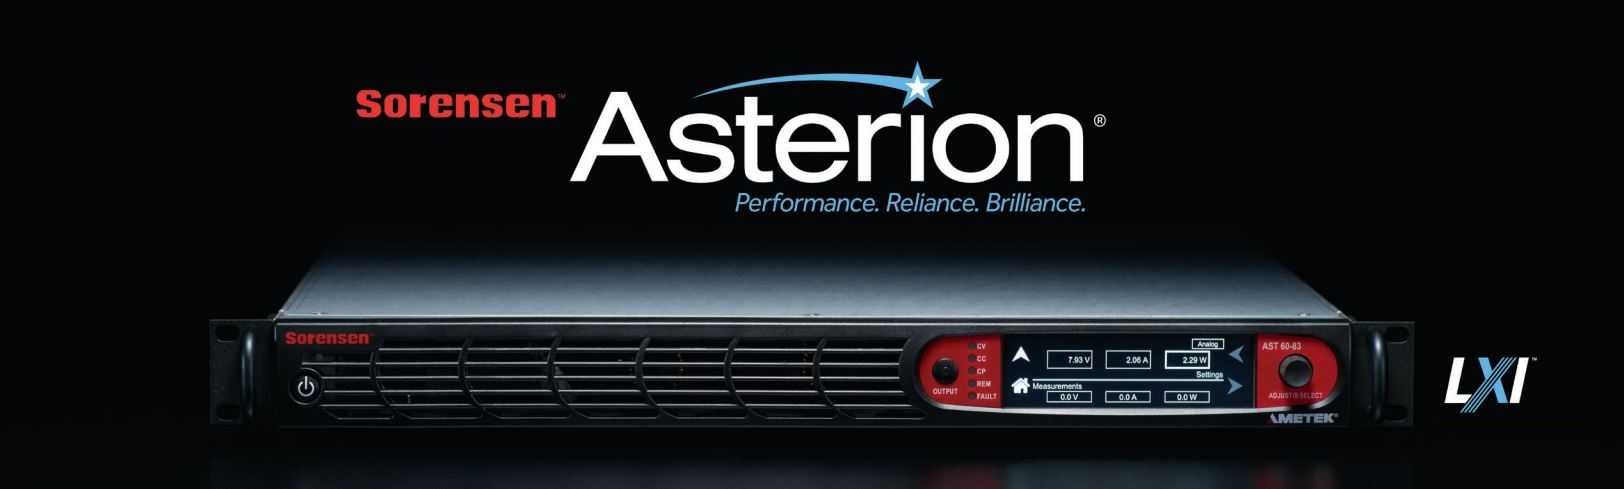 Sorensen Asterion DC Series - High Performance Programmable DC Power Supply